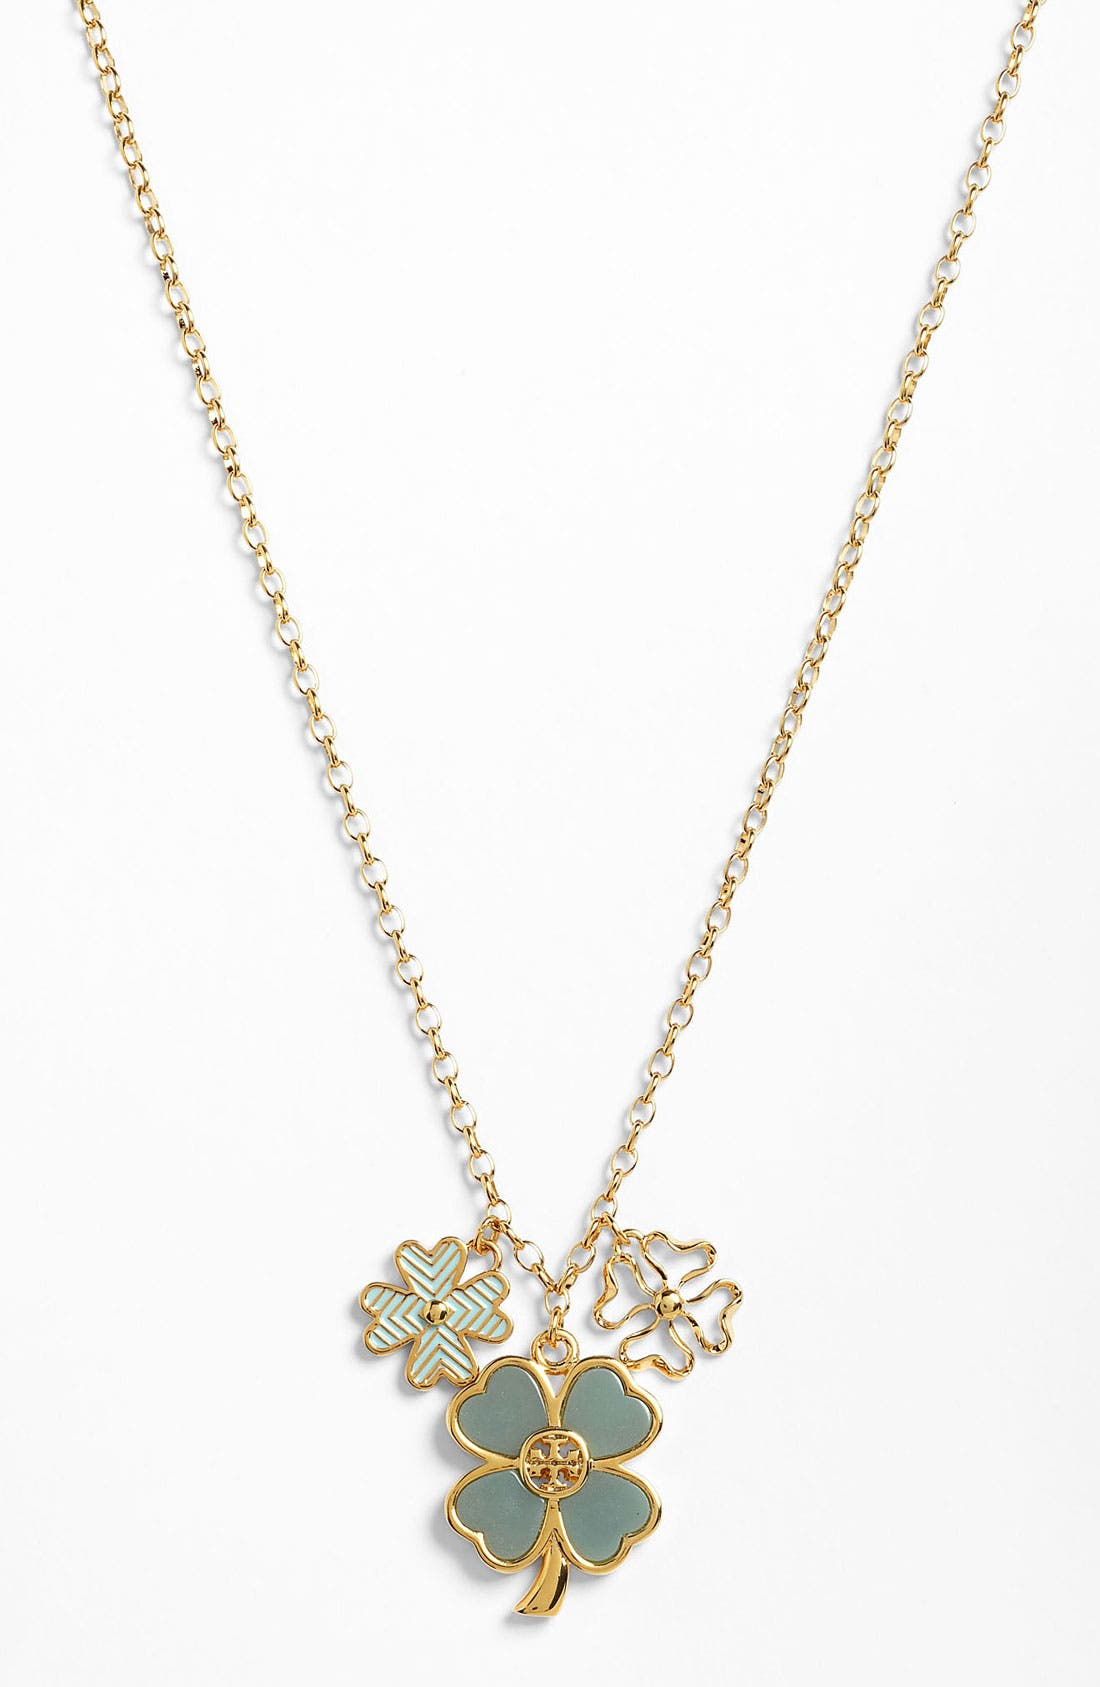 Alternate Image 1 Selected - Tory Burch 'Shawn' Long Pendant Necklace